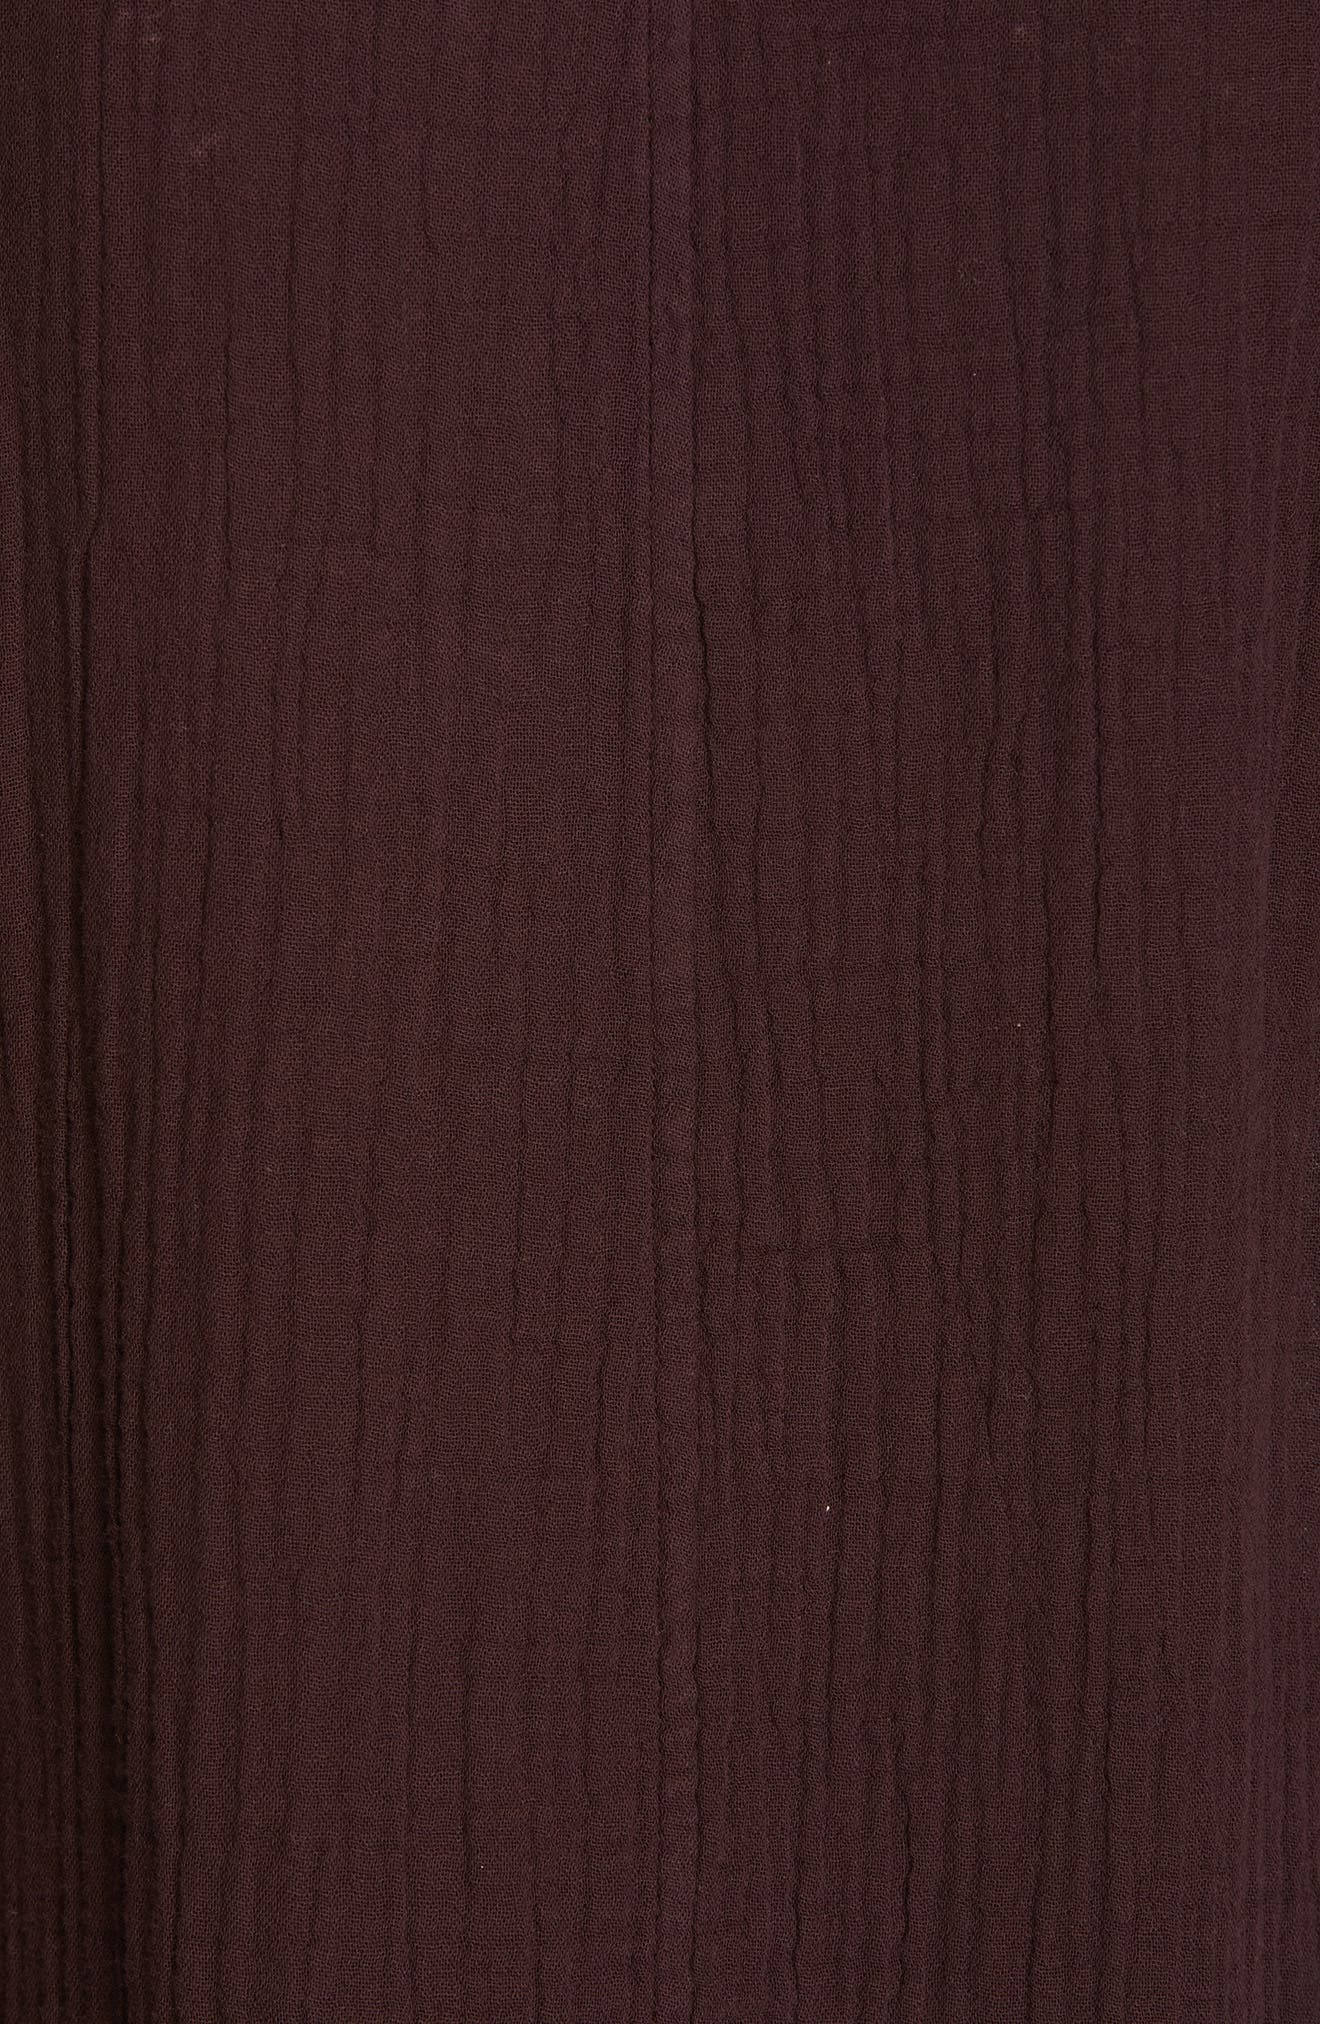 EILEEN FISHER,                             Textured Organic Cotton Shirt Dress,                             Alternate thumbnail 6, color,                             CASSIS